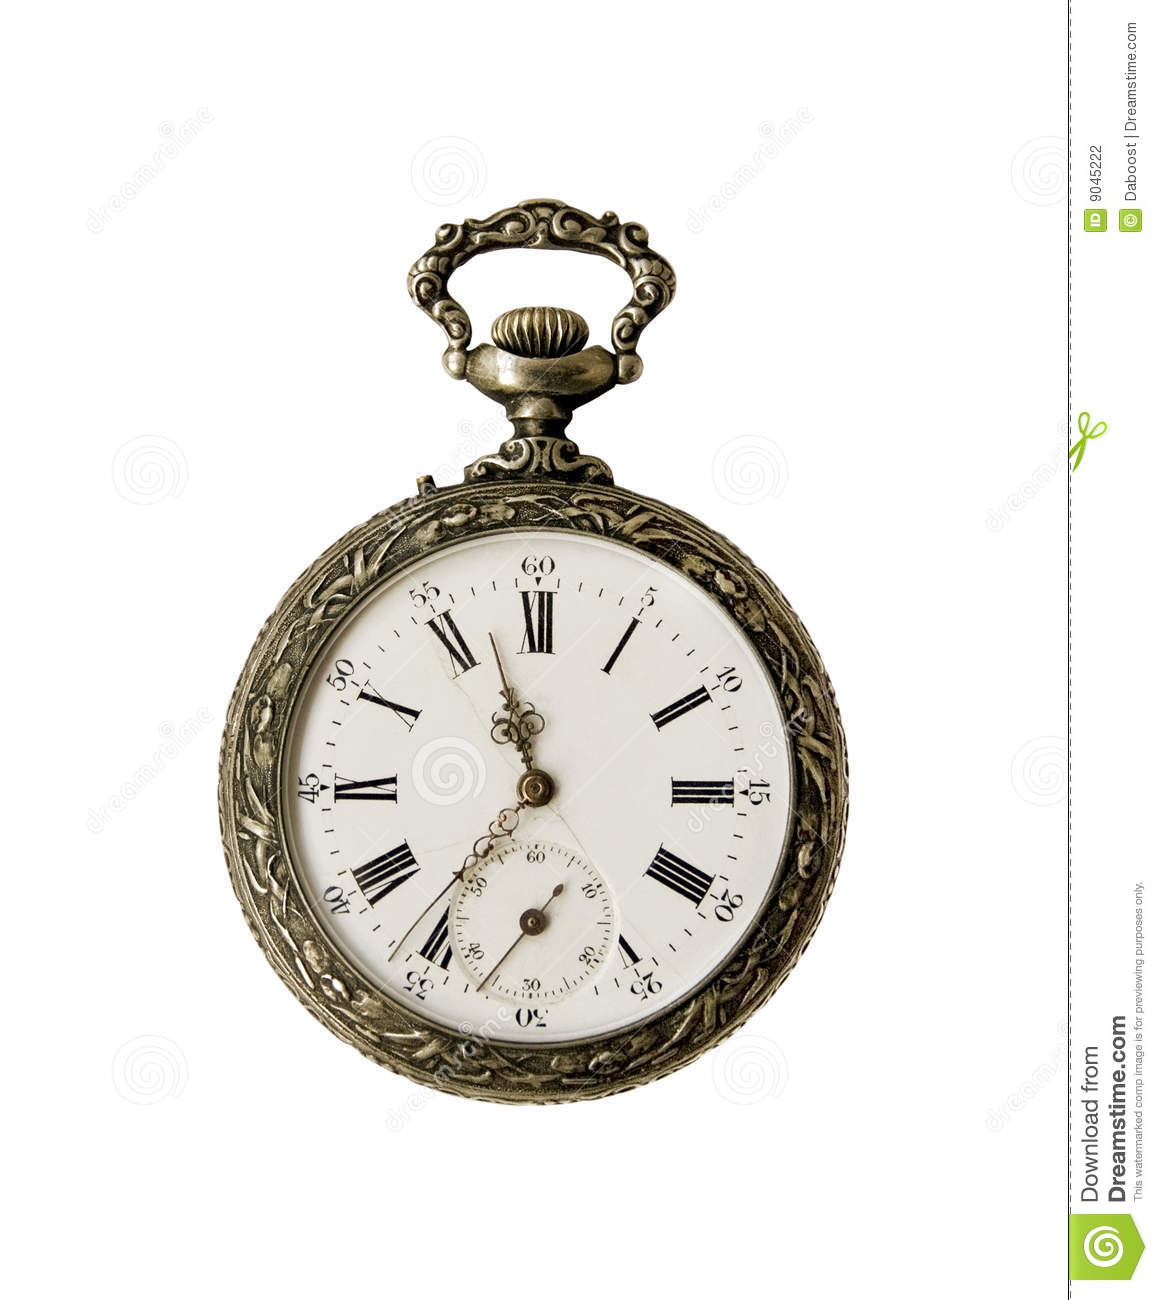 Vintage Pocket Watch Stock Photography - Image: 9045222